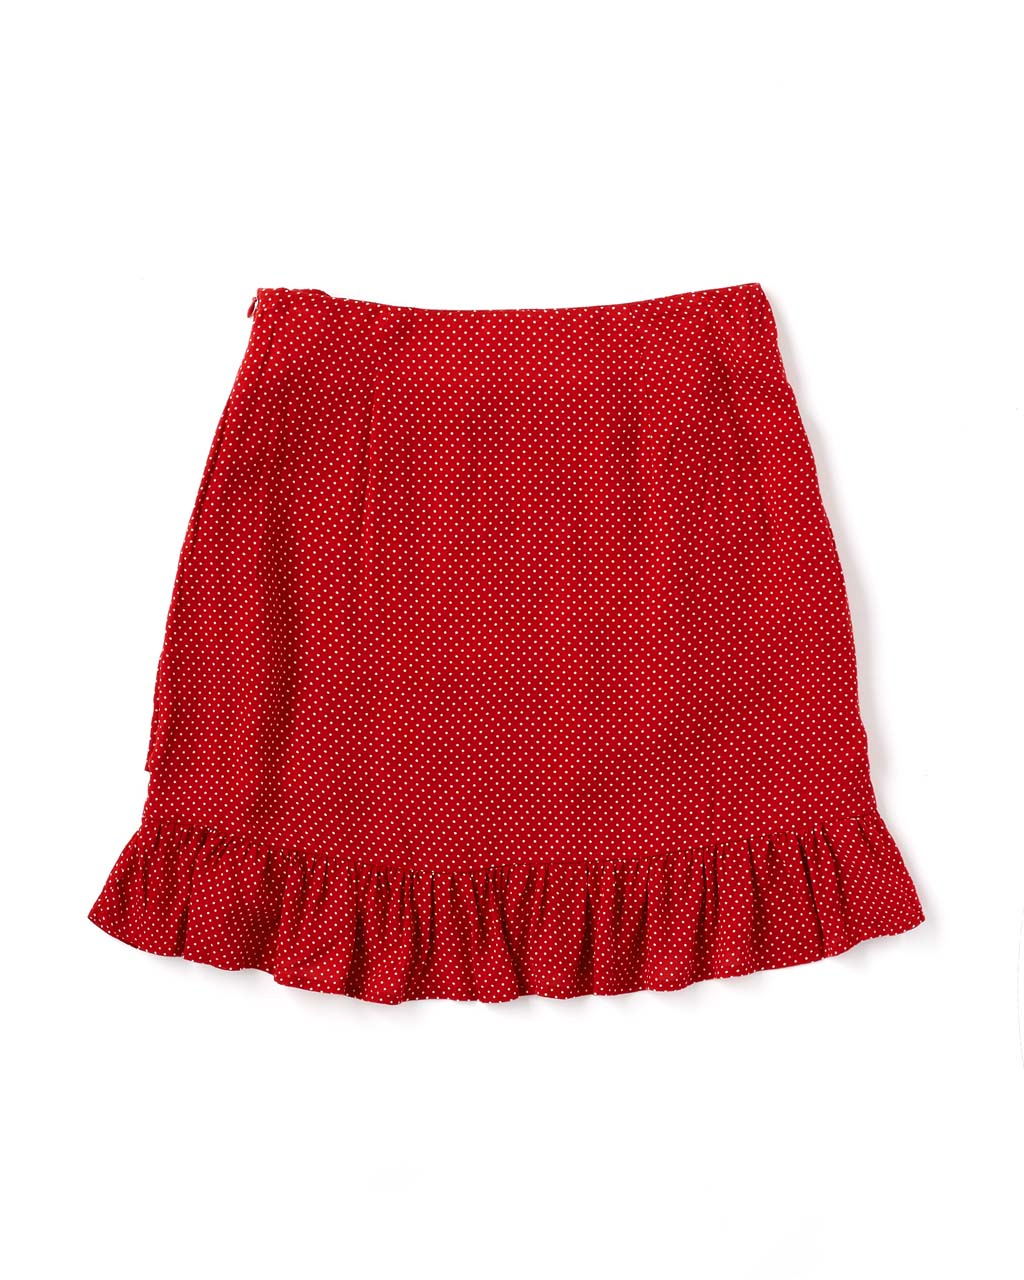 Back of red skirt with small white dots and ruffled hem laying flat on white background.